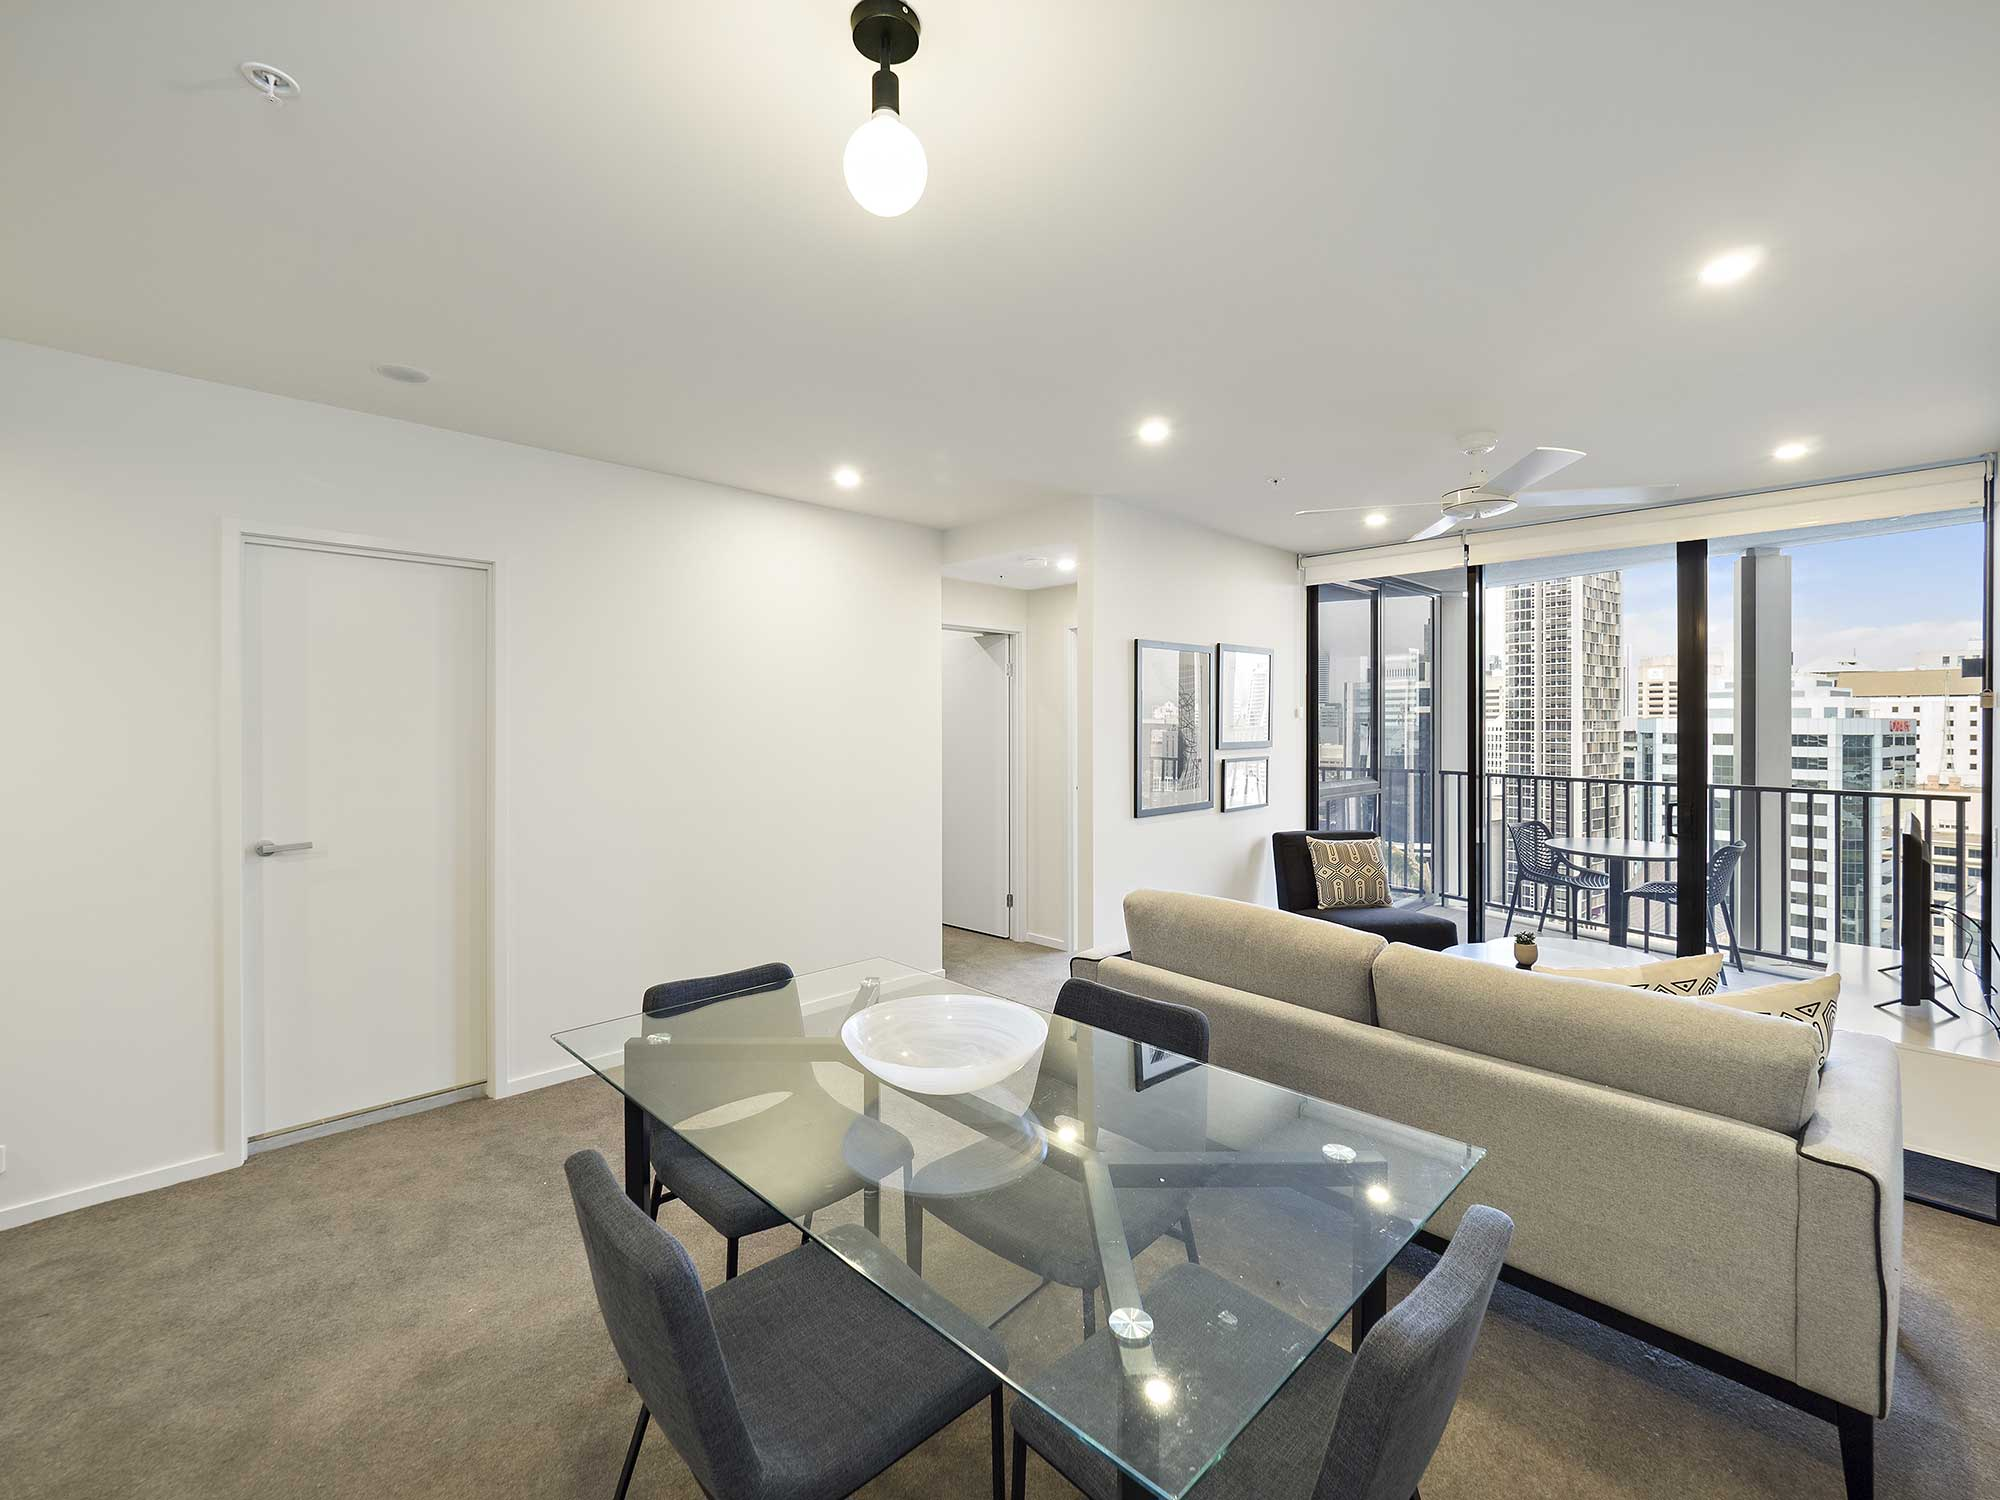 Real estate apartment photography Spire Residences, Apartment 2108 lounge, August 2018